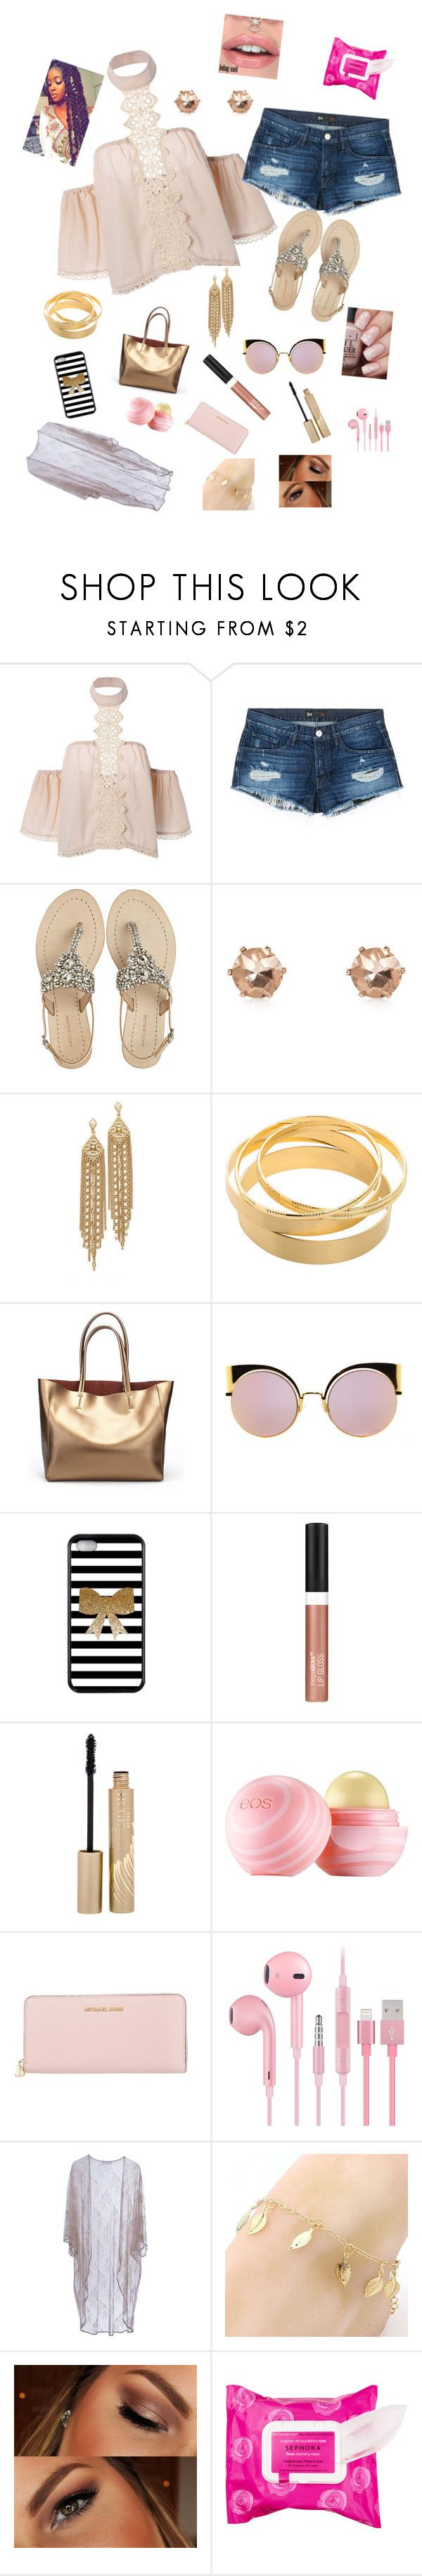 """""""Last Day of Summer"""" by trinsanity ❤ liked on Polyvore featuring 3x1, Antik Batik, River Island, Capwell + Co, Fendi, Wet n Wild, Stila, Eos, MICHAEL Michael Kors and Roses Are Red"""